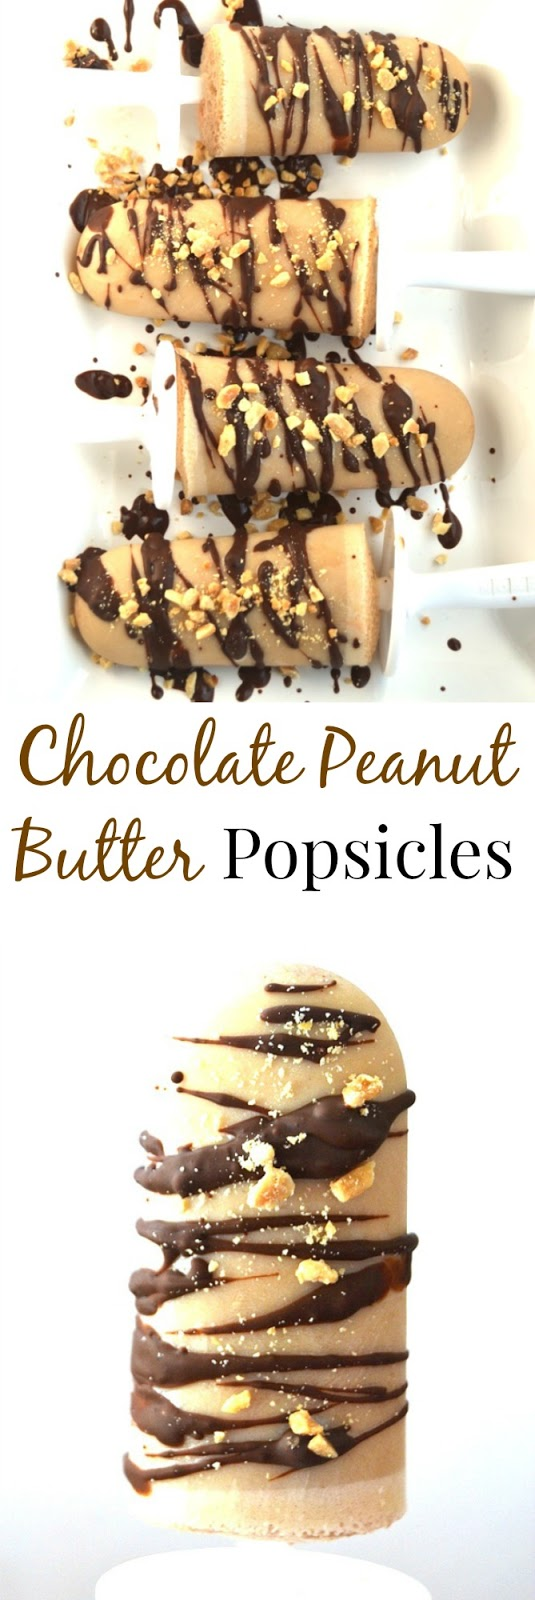 These Chocolate Peanut Butter Popsicles are  topped with drizzled chocolate and peanuts and are simple to make with only 6 ingredients! www.nutritionistreviews.com